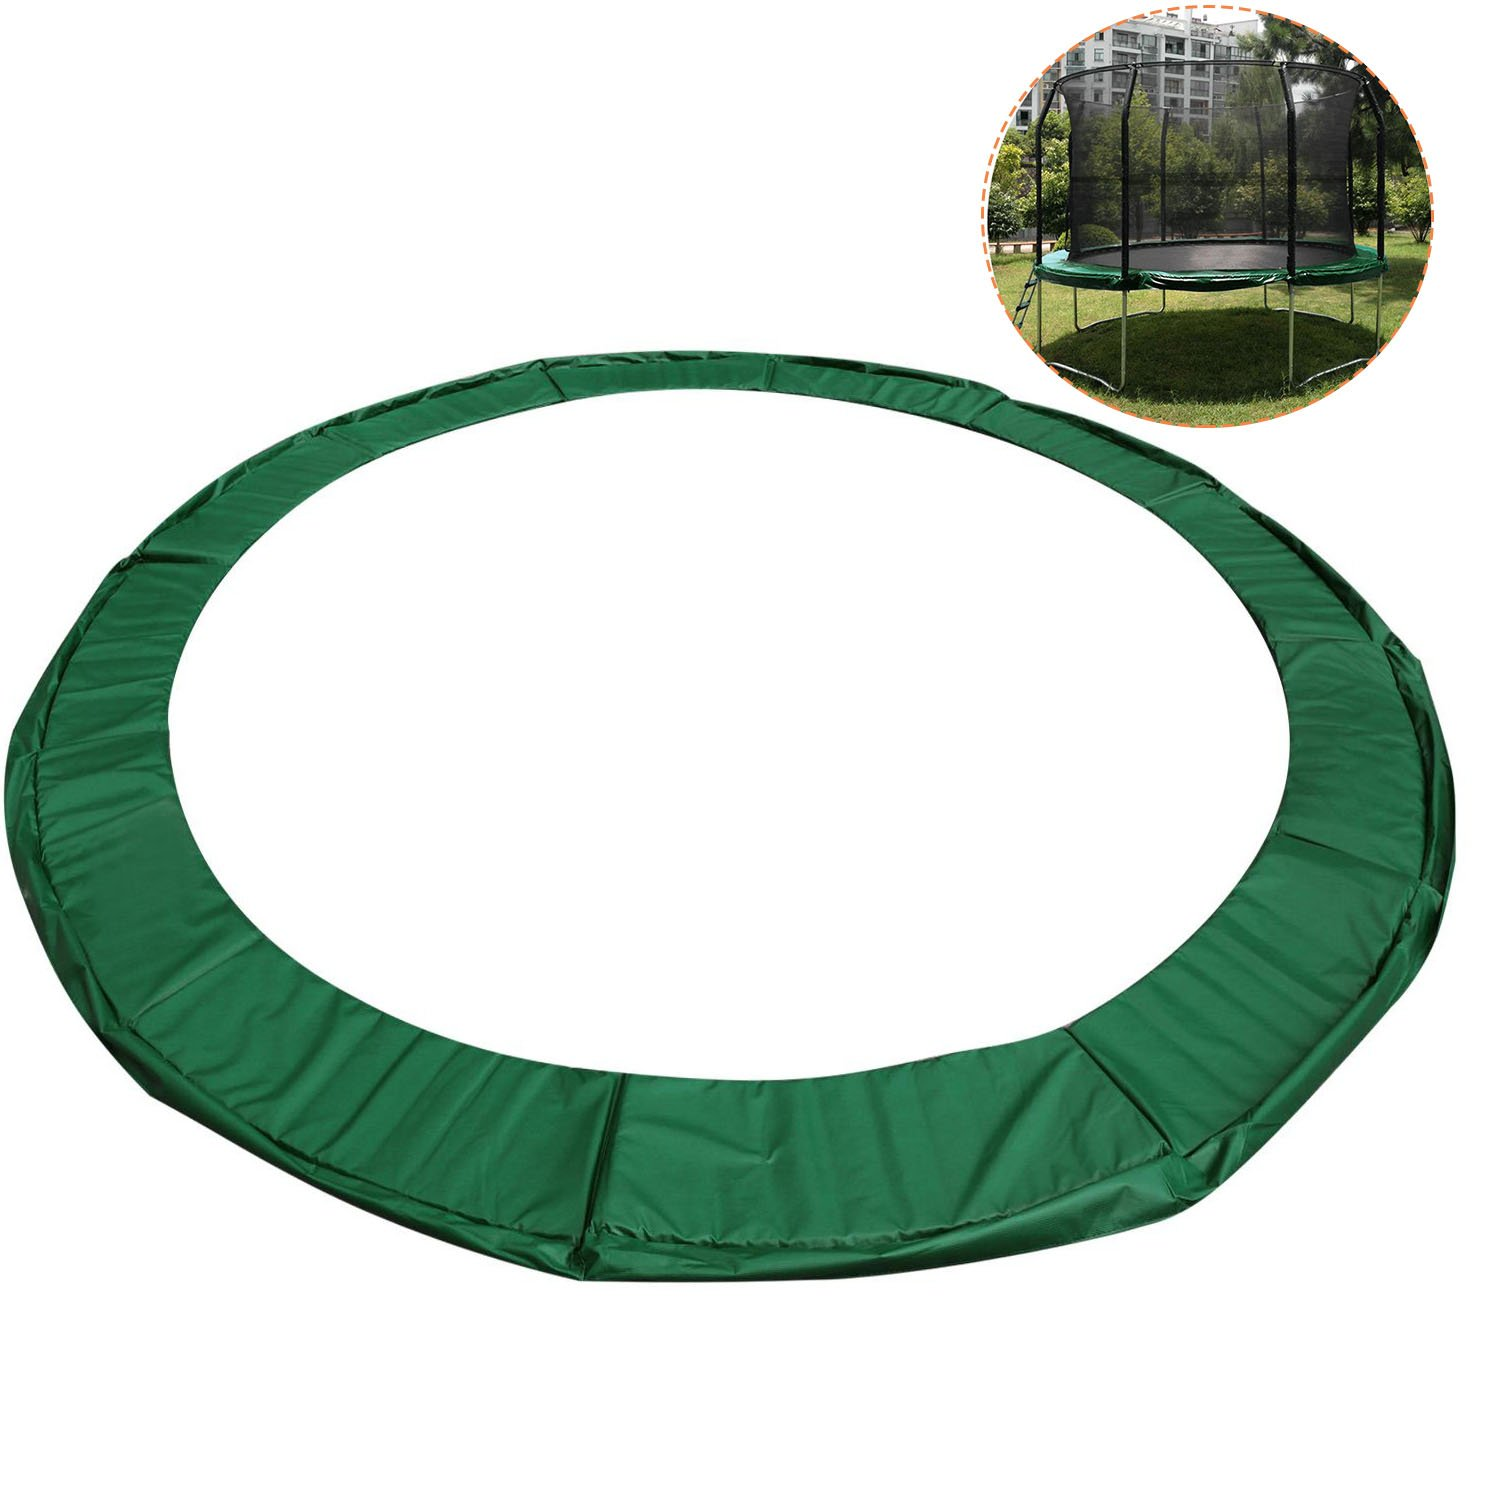 15FT Trampoline Safety Pad Round Frame Replacement Cover – Green by Cheesea